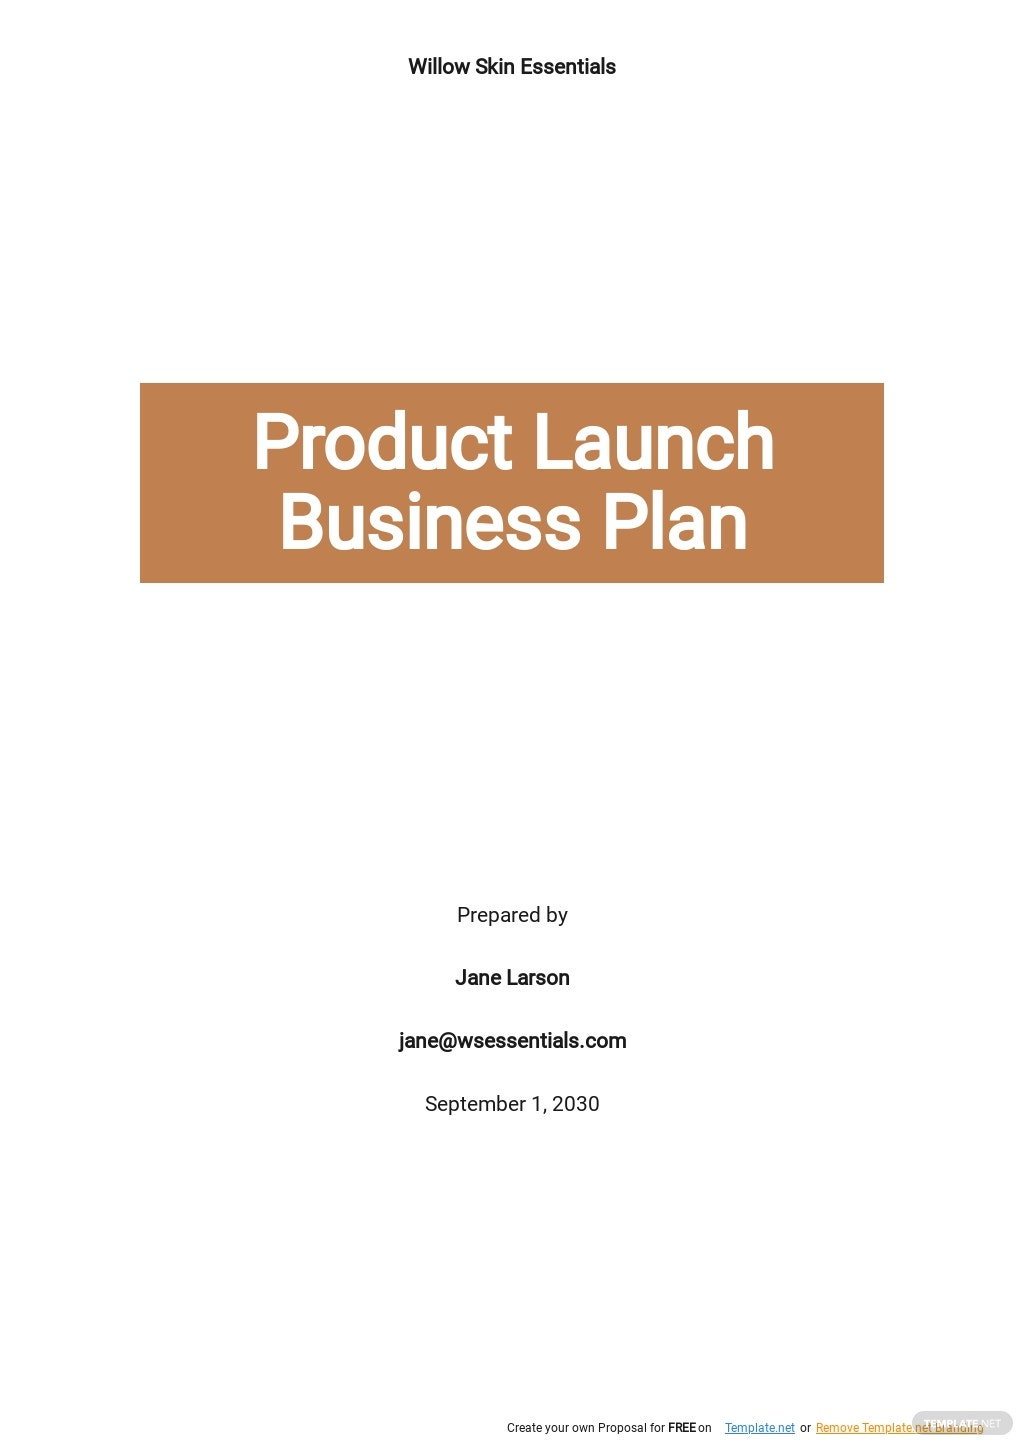 Product Launch Business Plan Template.jpe